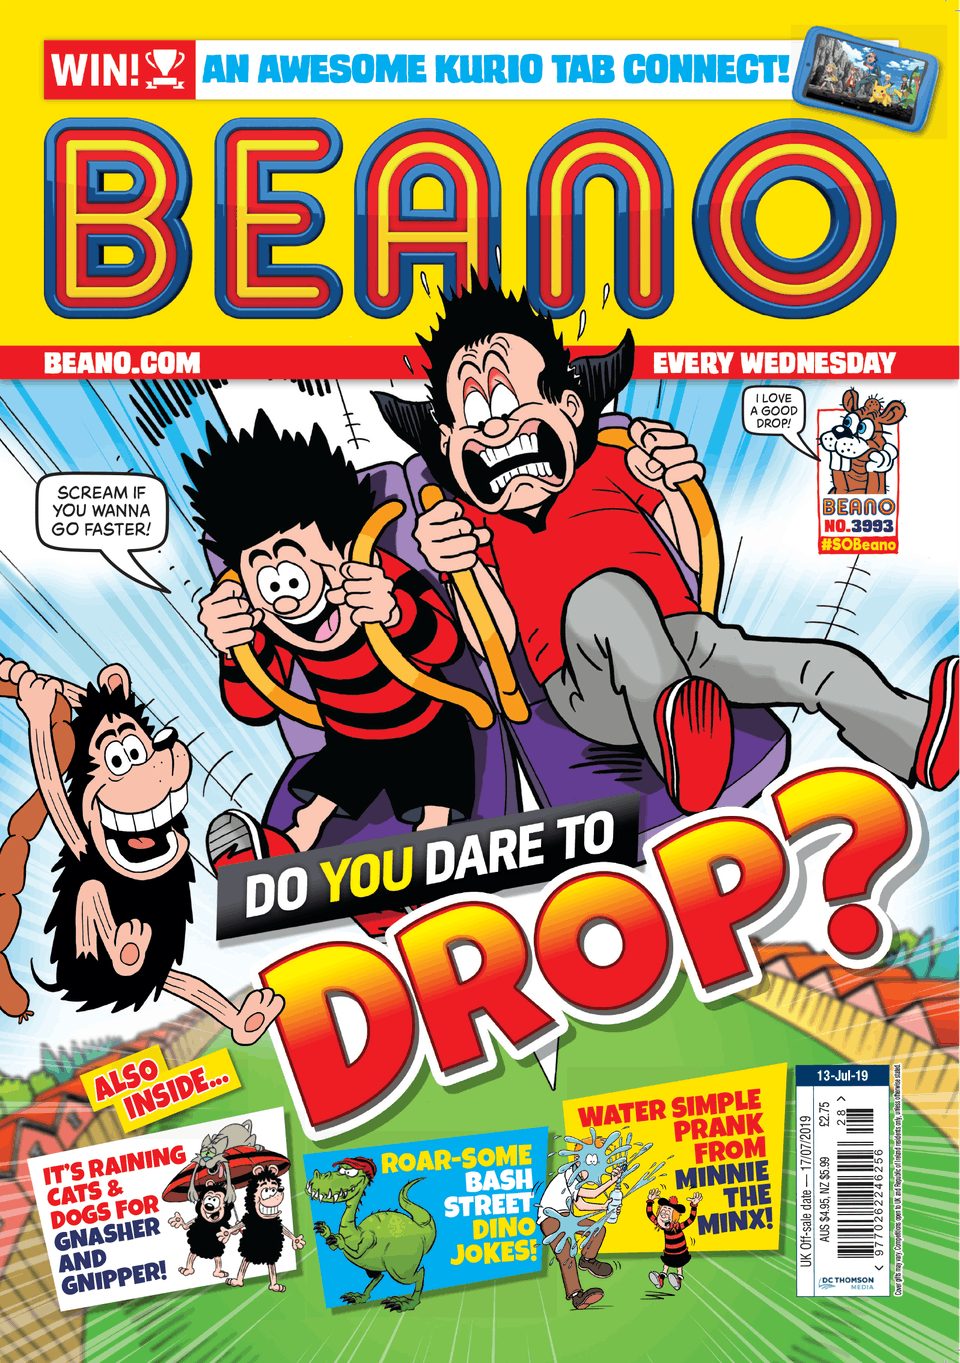 Inside Beano no. 3993 - Do You Dare to Drop?